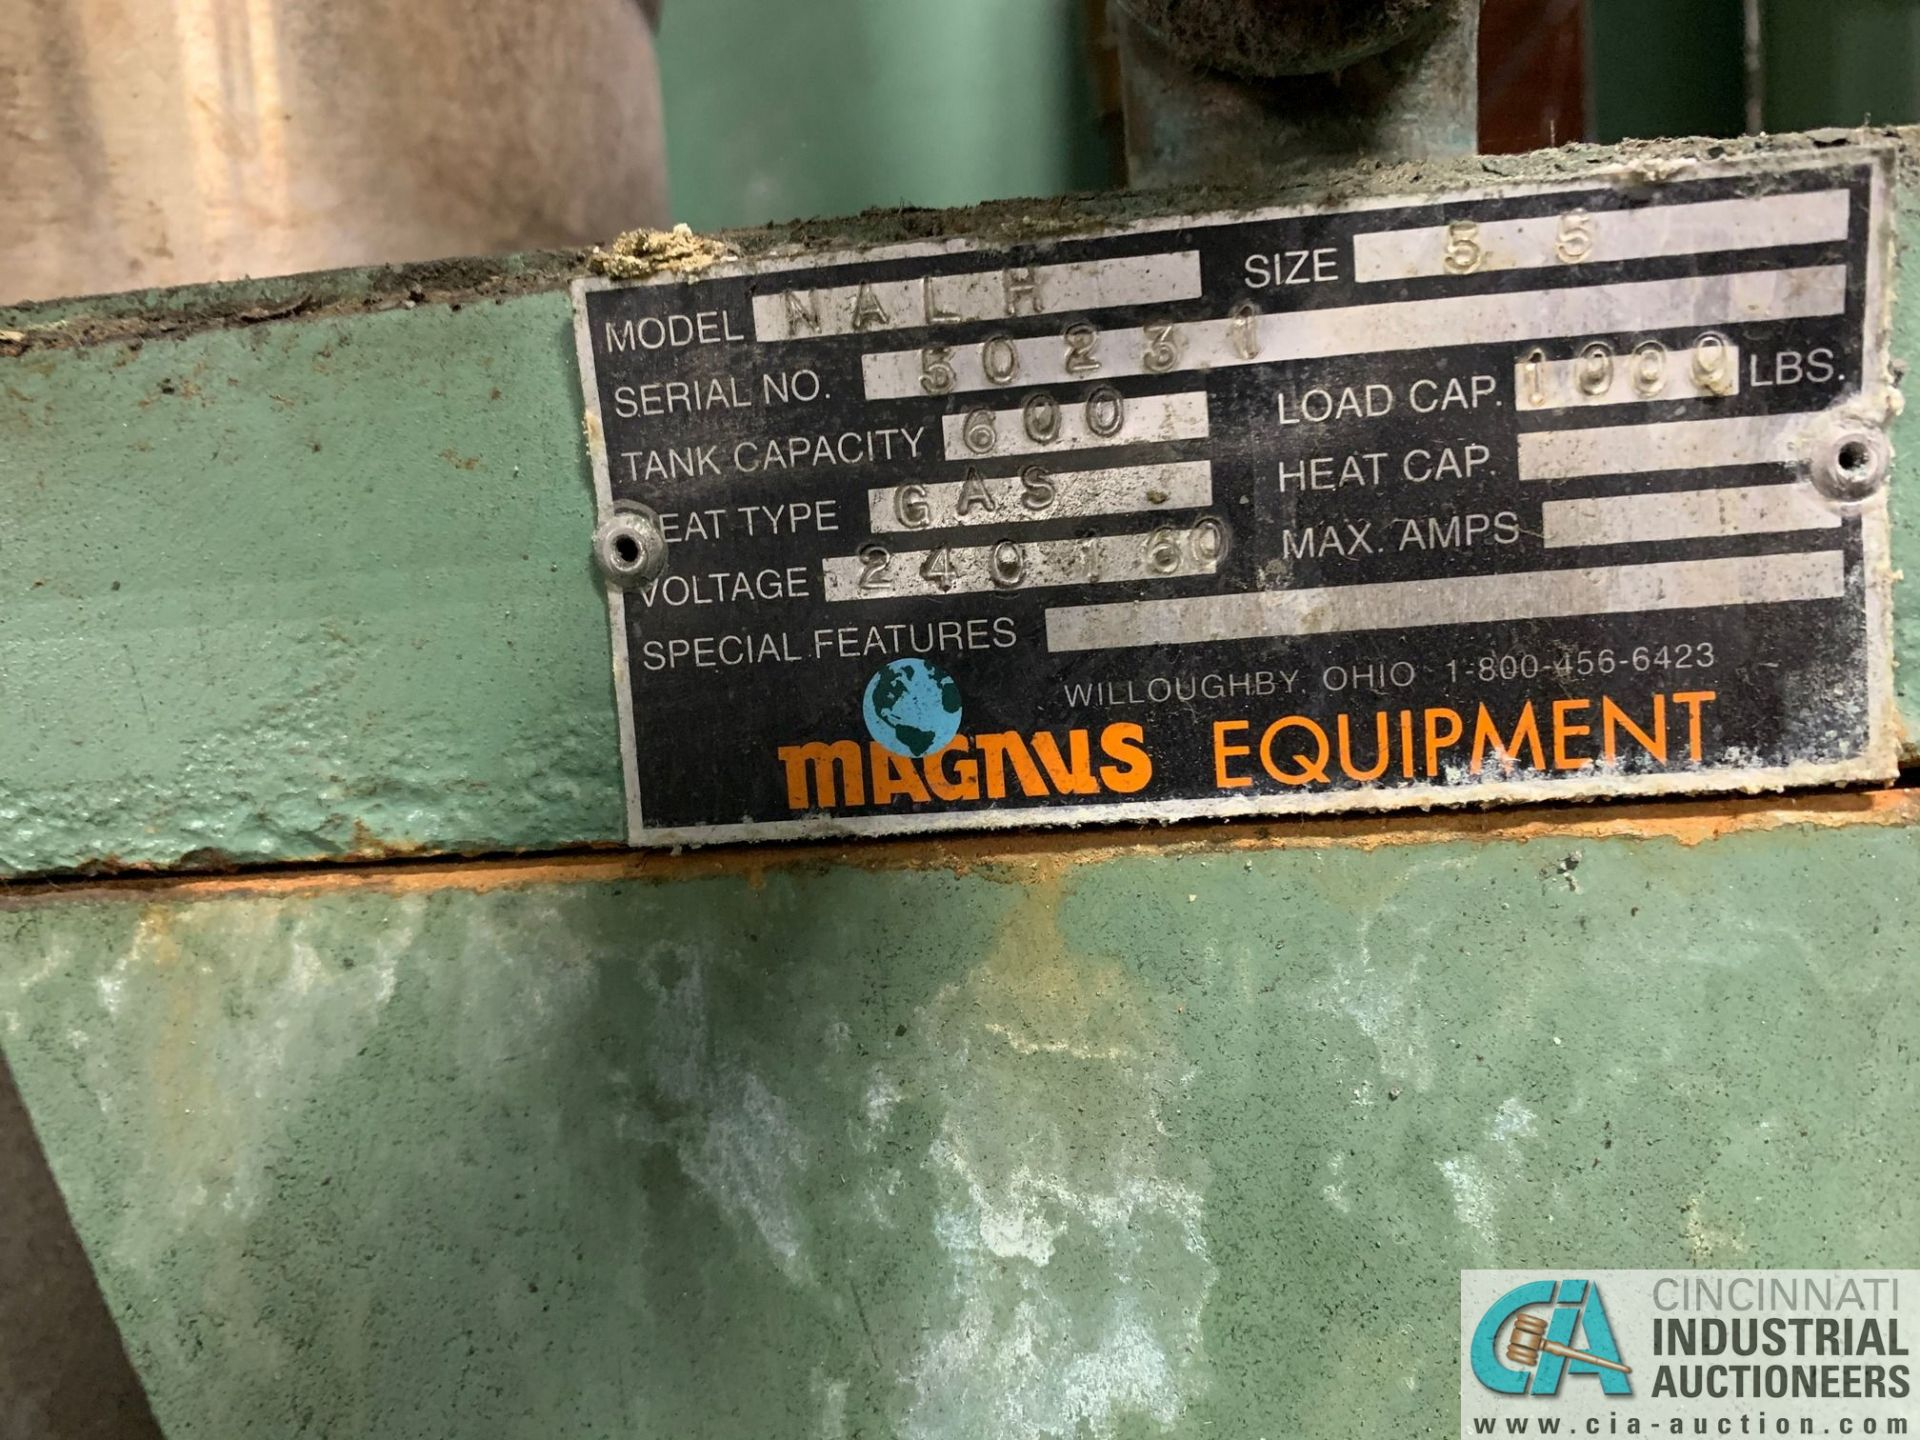 MAGNUS MAGNA-LIF MODEL MALH SIZE 5.5 DIP TYPE WASHER; S/N 50231, 600 GALLON TANK, 1,000 LB. CAPACITY - Image 8 of 8